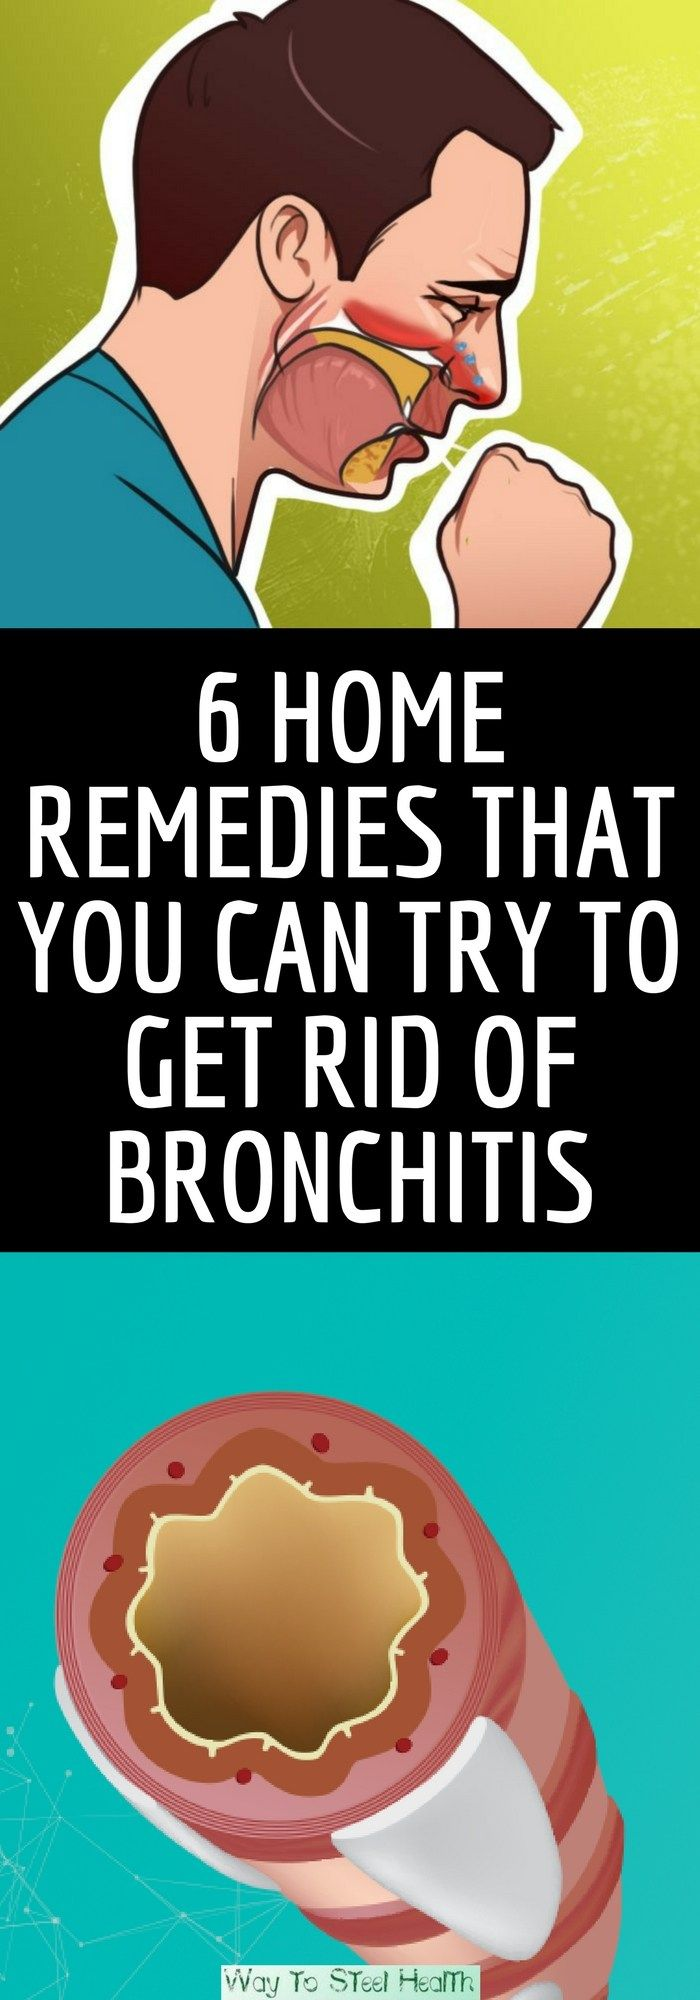 how to get rid of bronchitis quickly